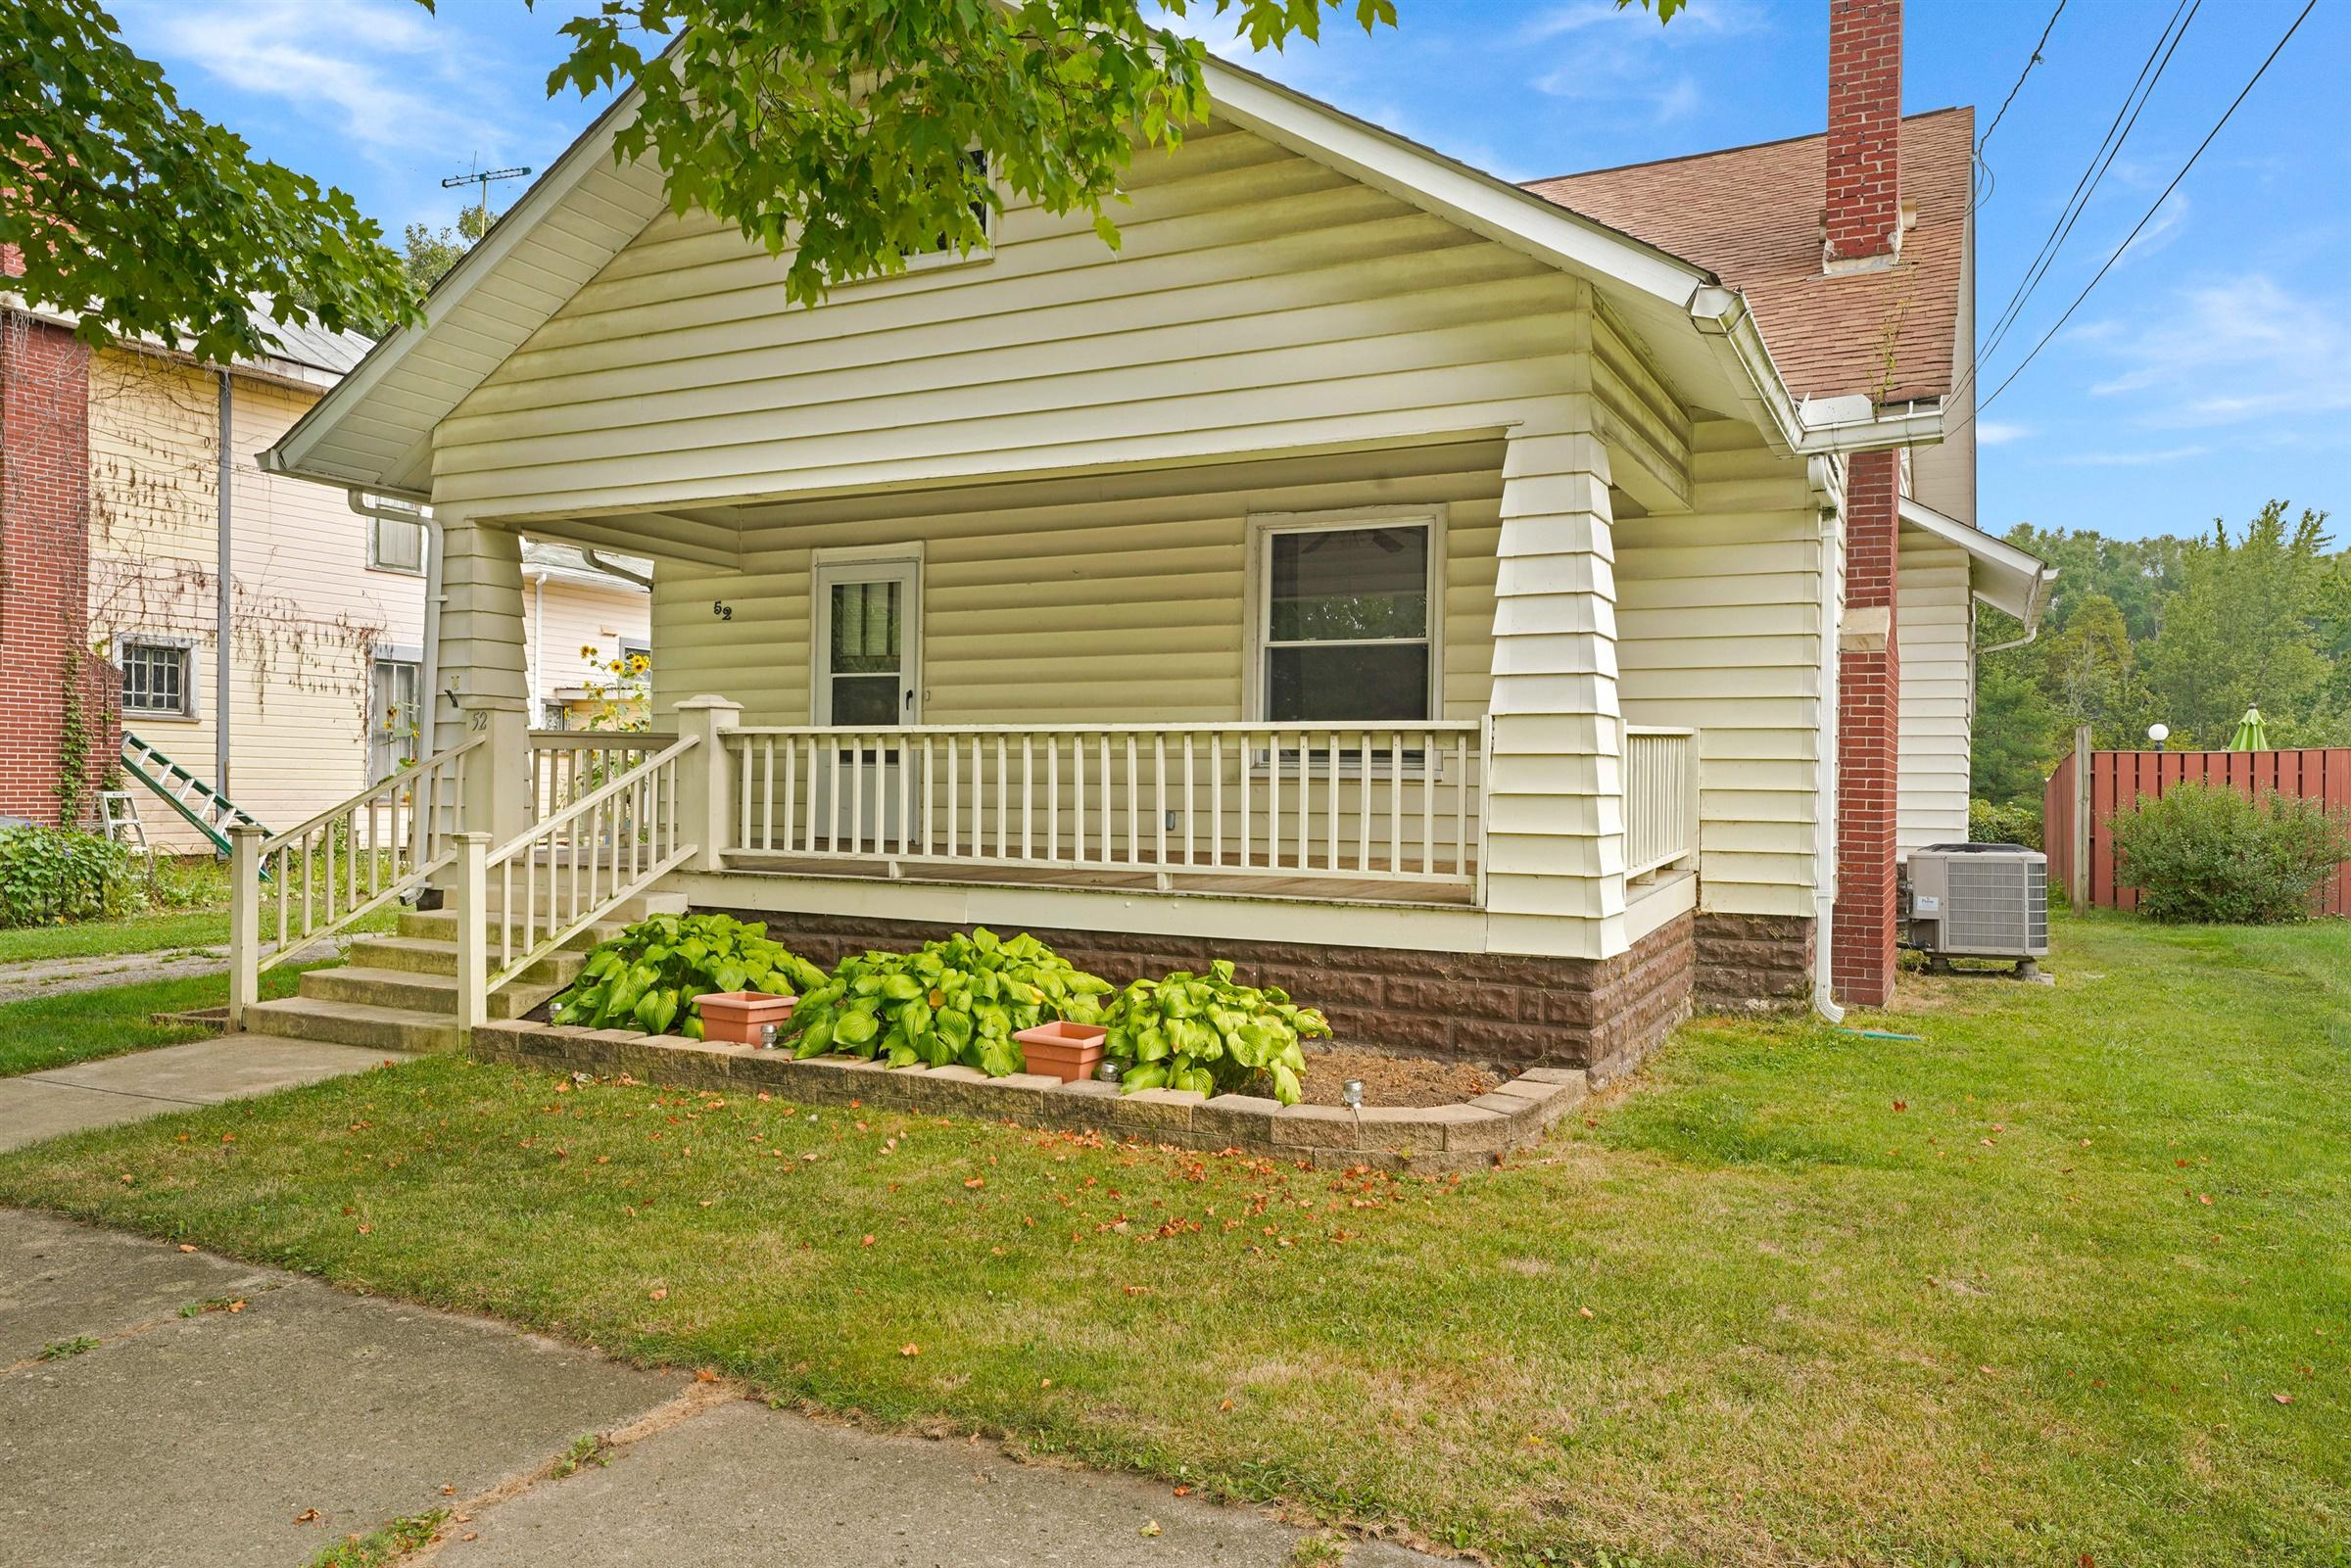 52 E State St Milford Center, OH